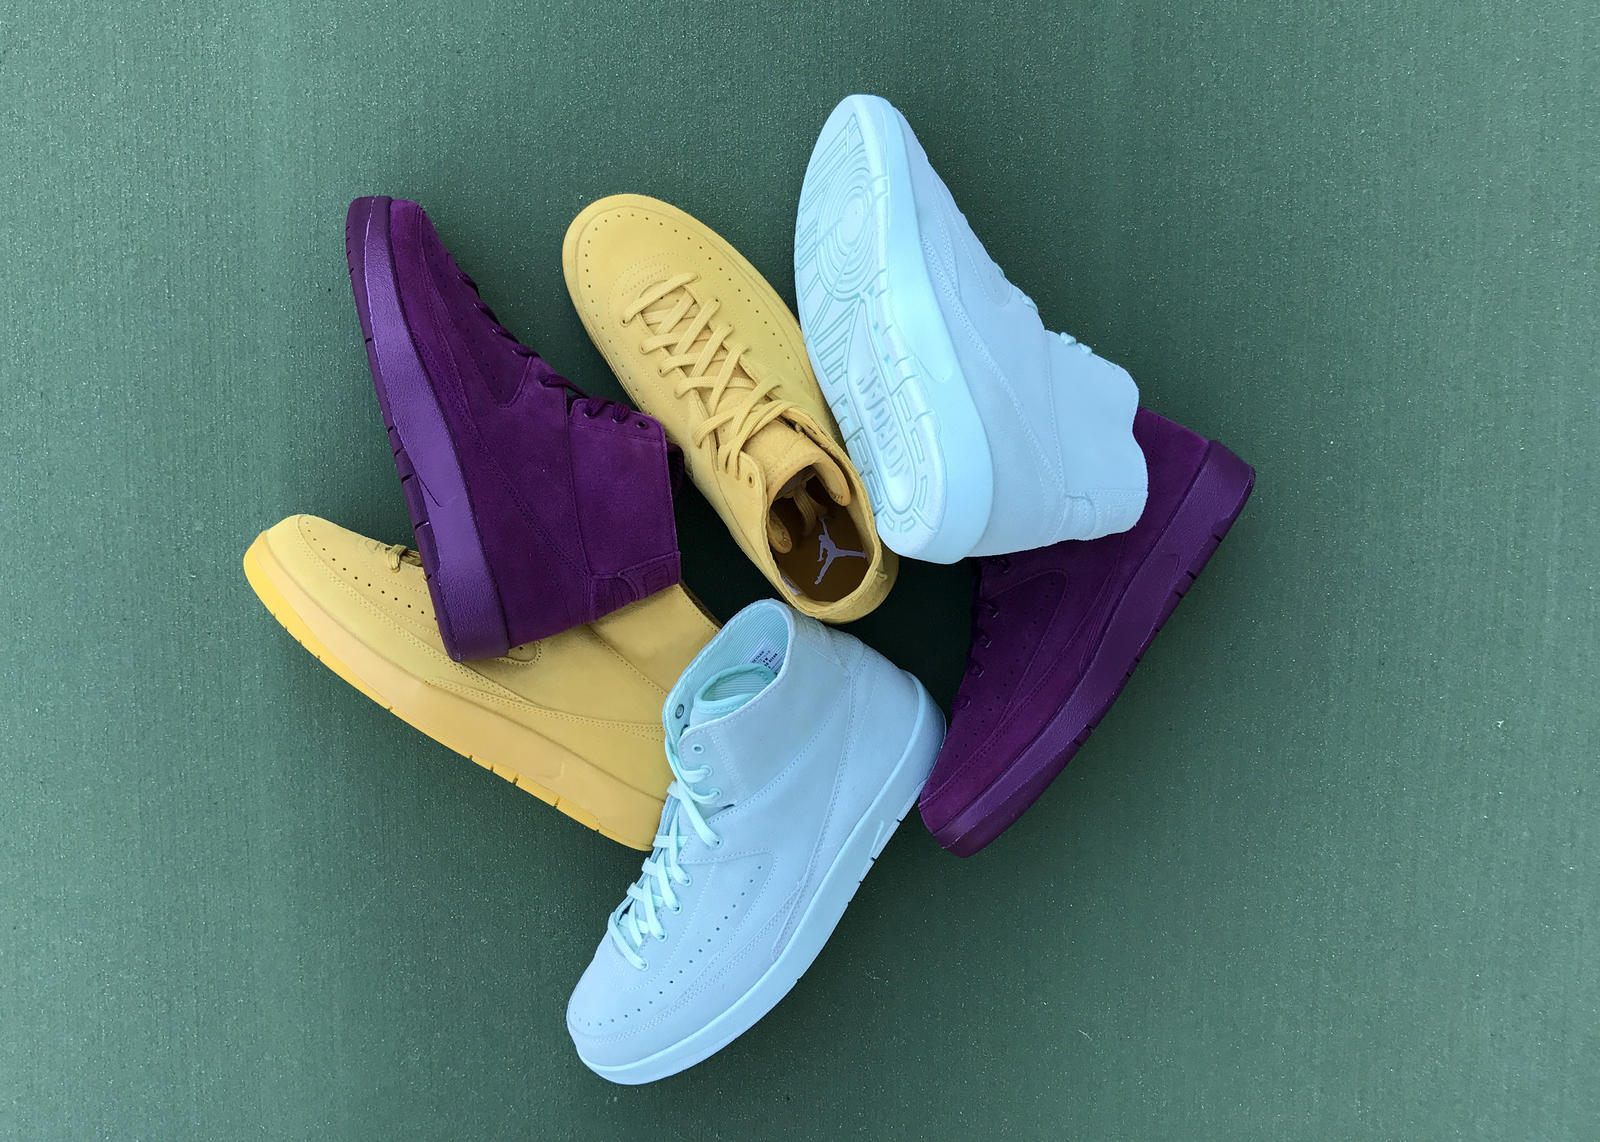 2d3adaf637f5 Air Jordan II Decon  The First Luxury Basketball Sneaker Gets Deconstructed  9